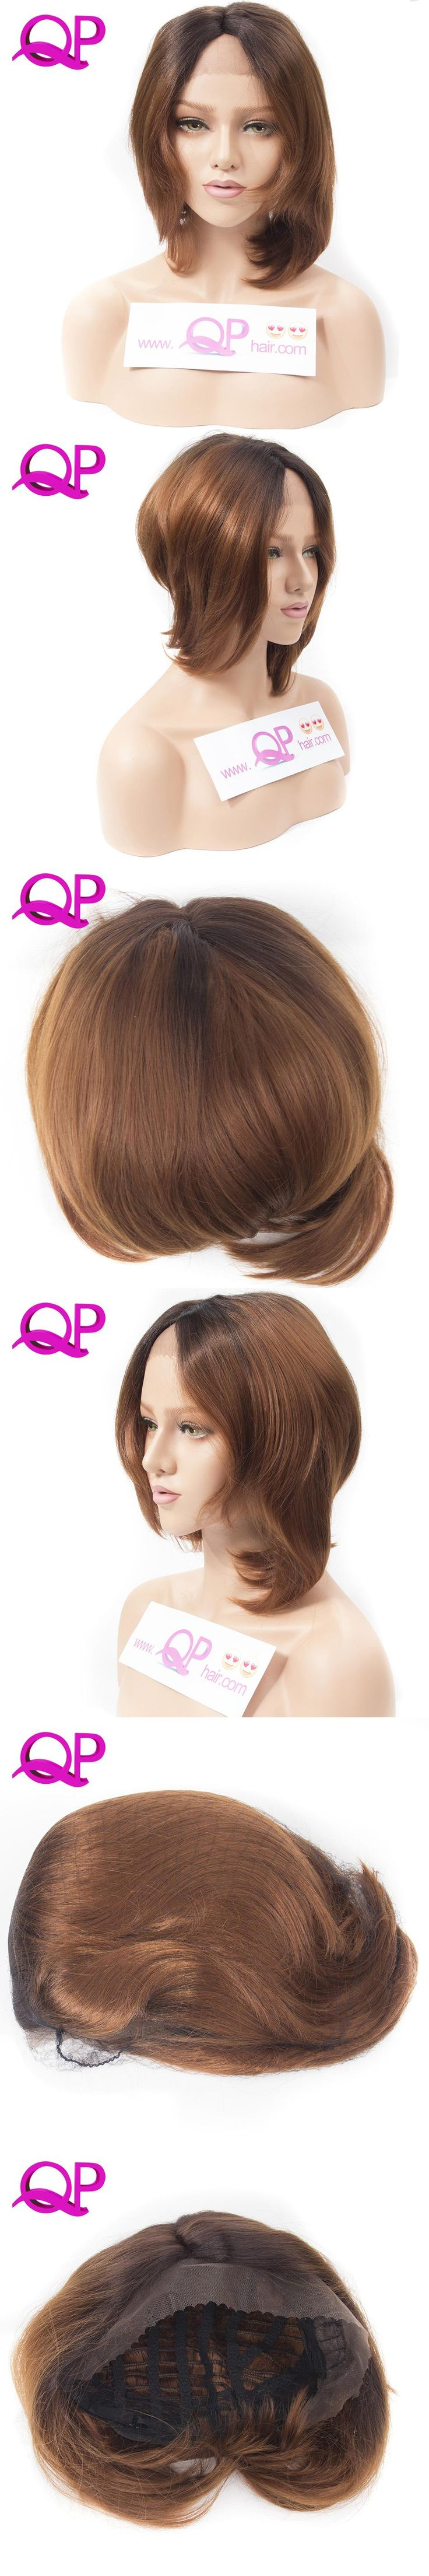 Qp hair Black Ombre Blone Straight Bob Synthetic Lace Front Wigs For Women High Temperature Short Hairstyles Natural Afro Wigs